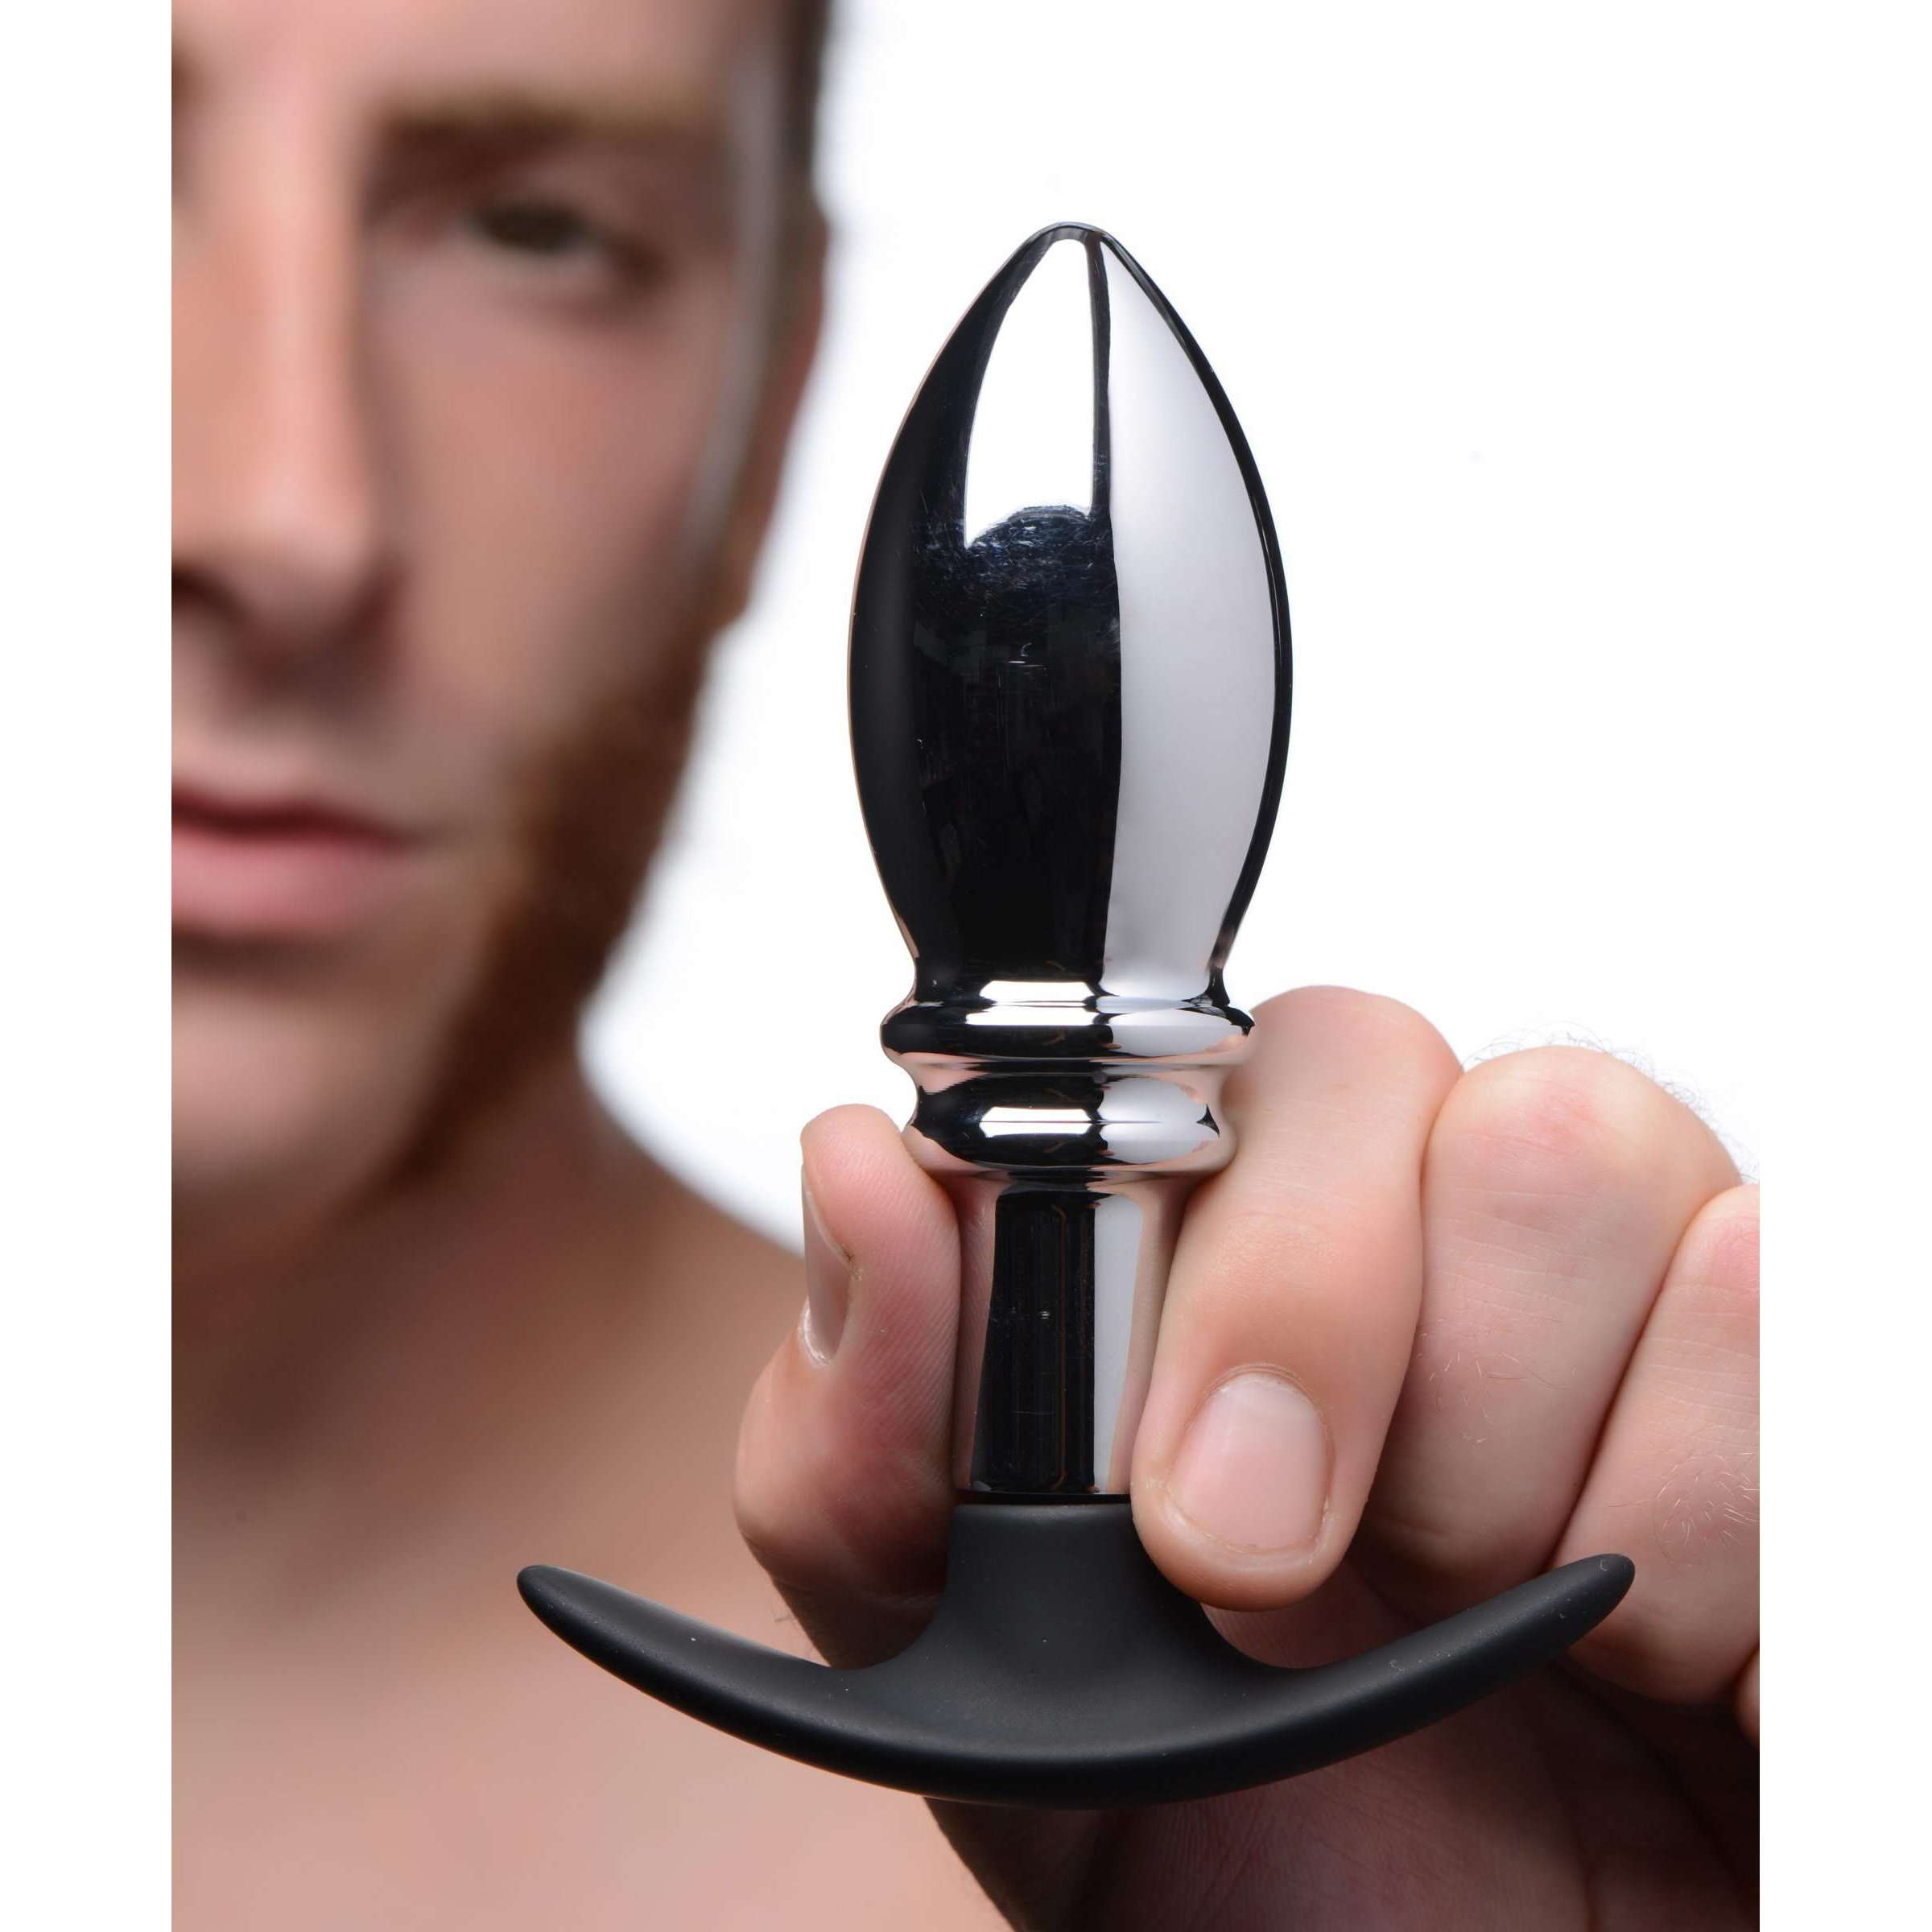 Dark Stopper Metal and Silicone Anal Plug